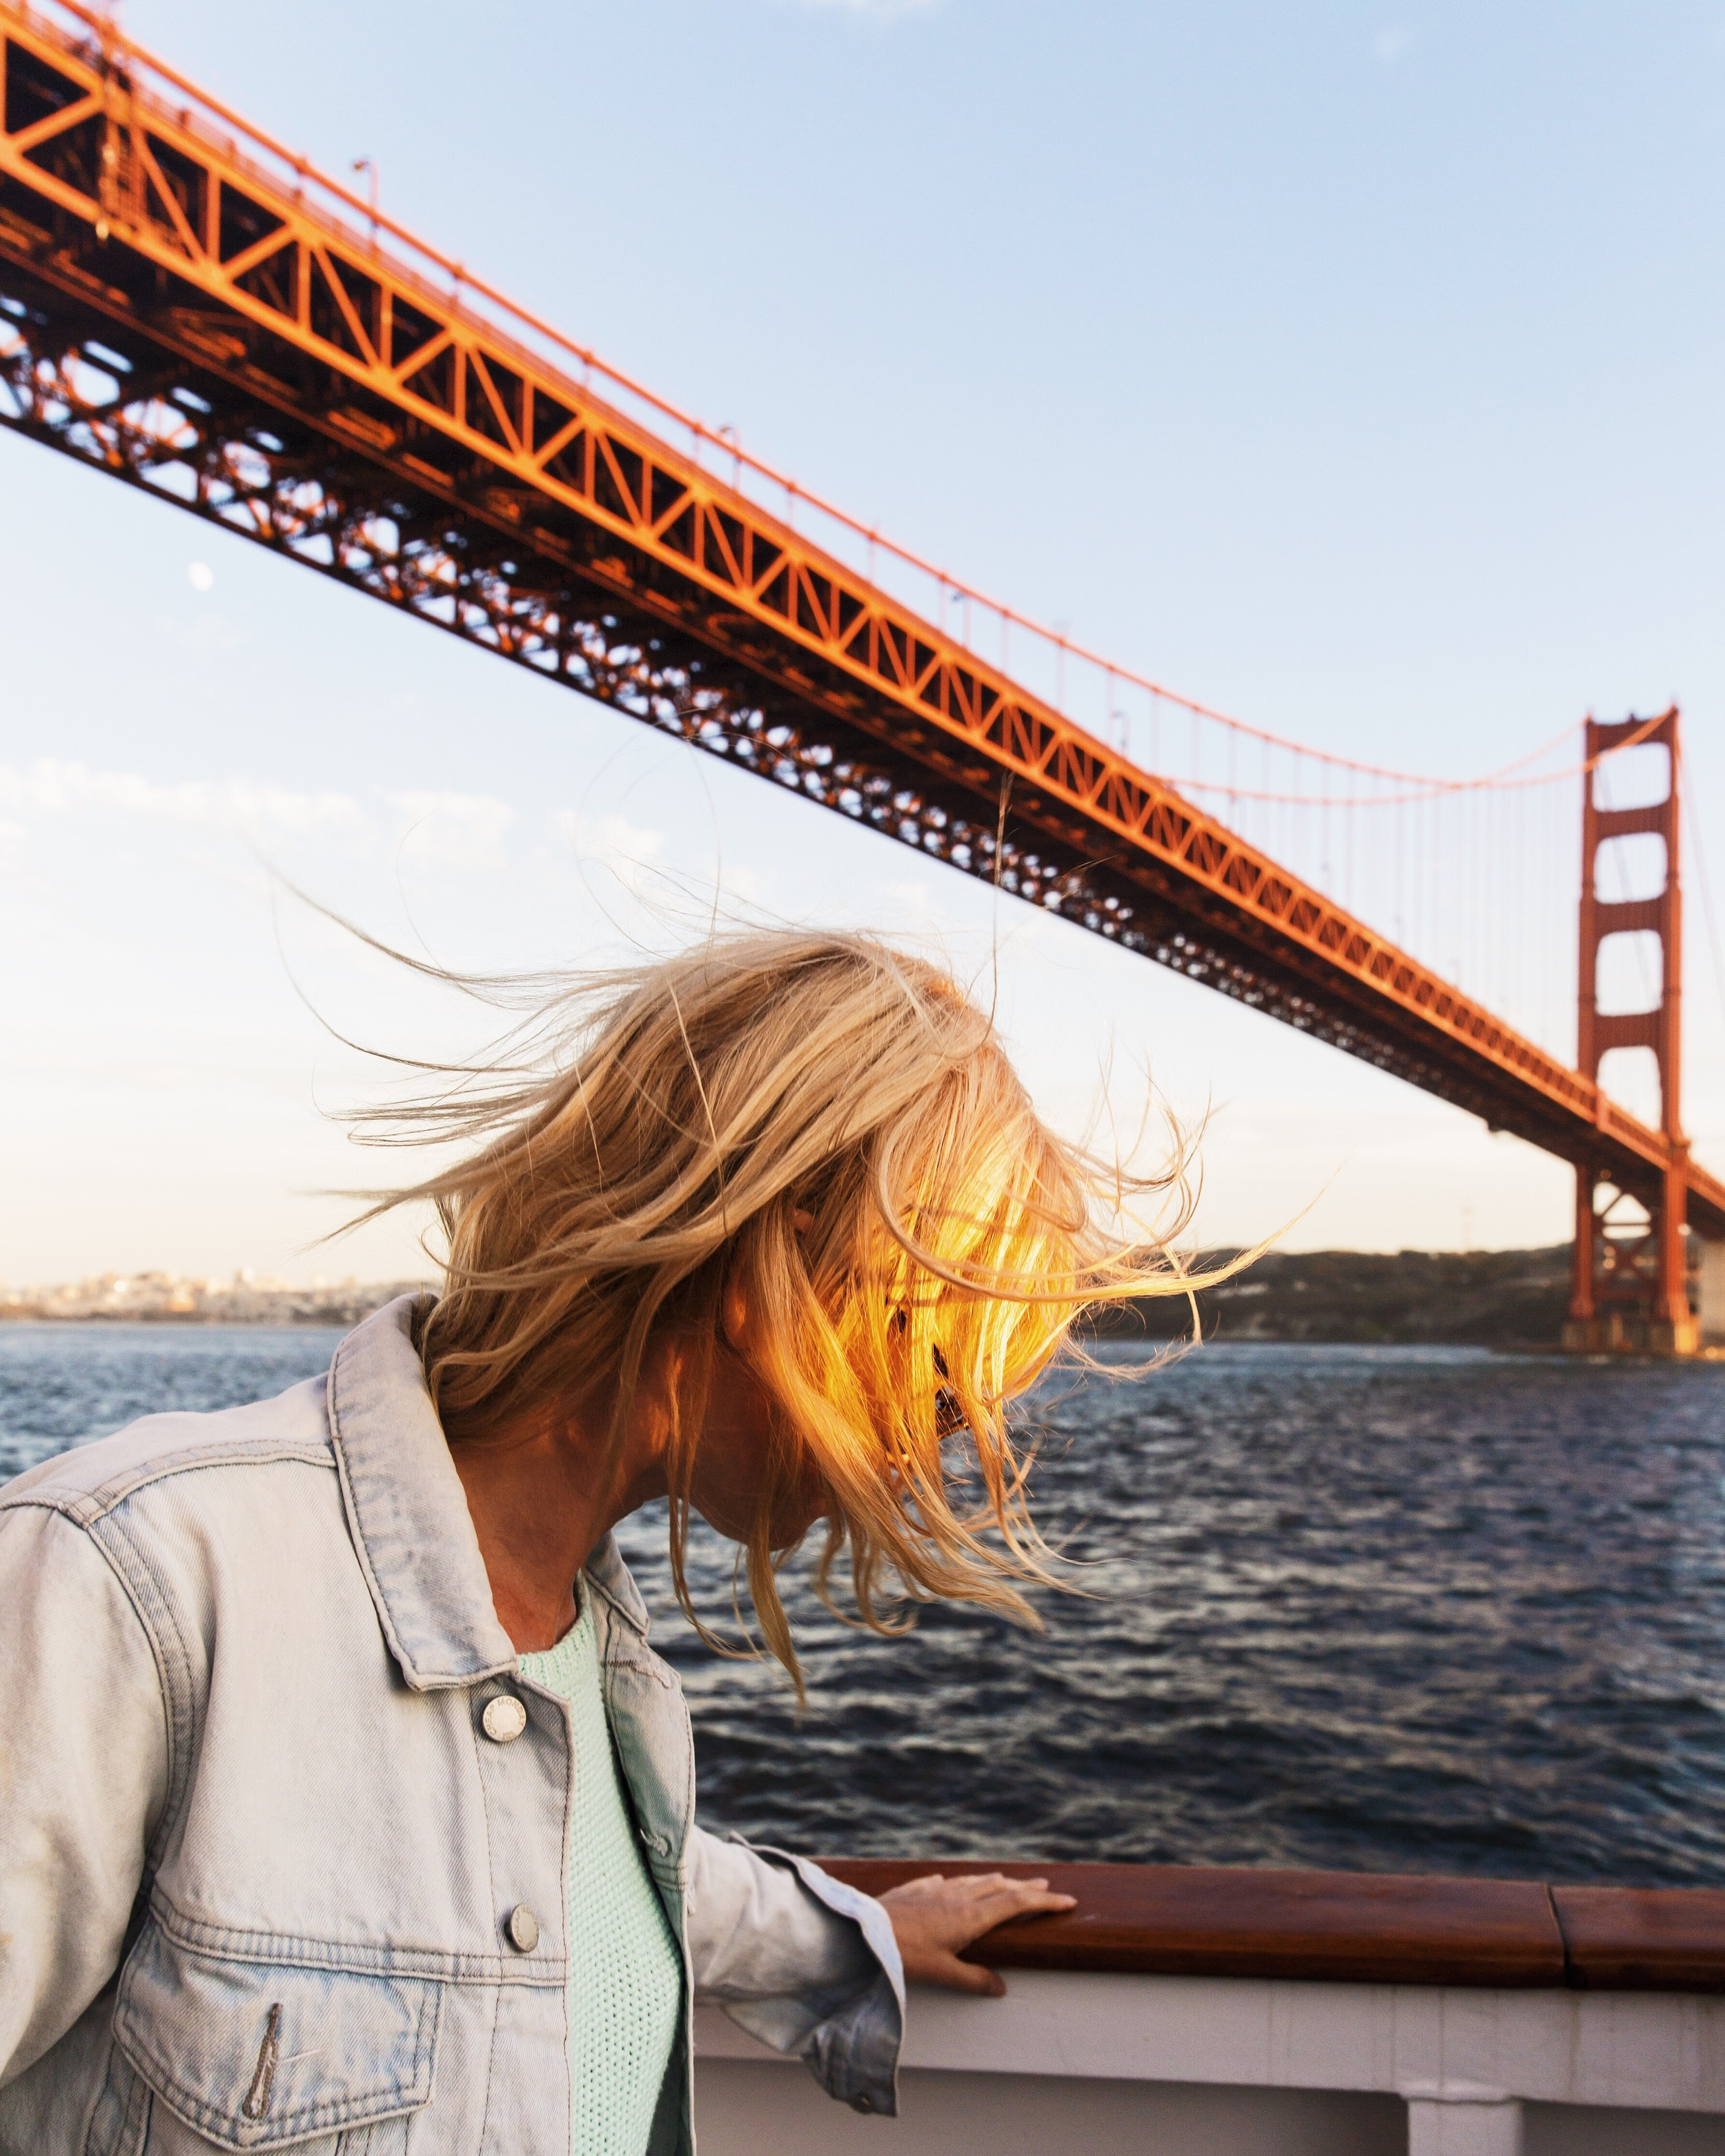 Golden Gate Bridge, Red, Wind, Hair, GGB, Girl, Sunset, Boat, Cruise